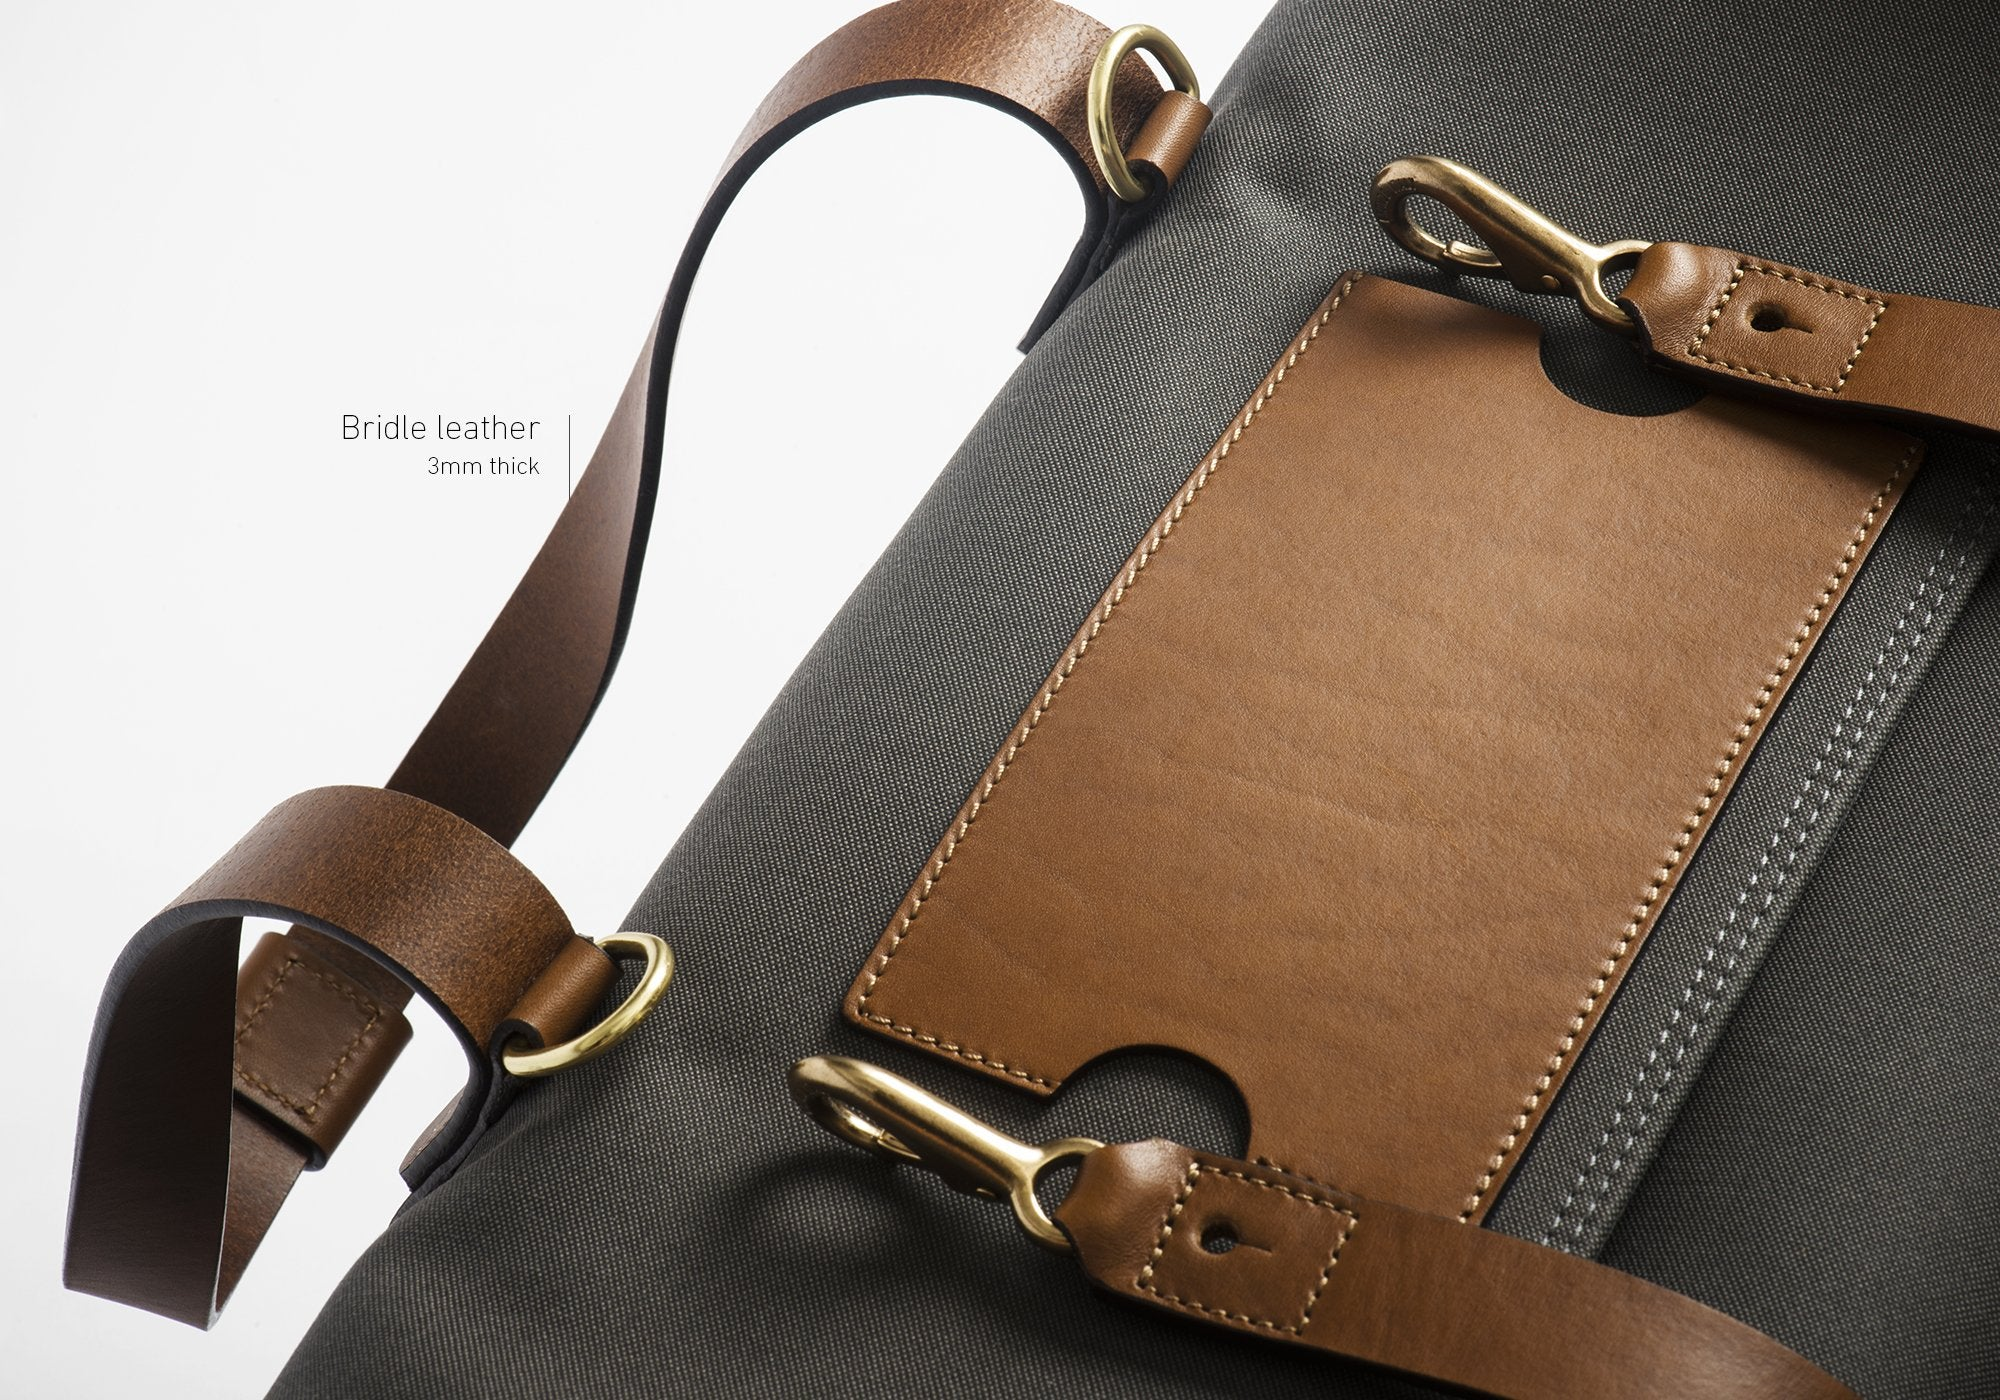 close-up of Mismo bag showcasing 3mm thick vegetable-tanned bridle leather